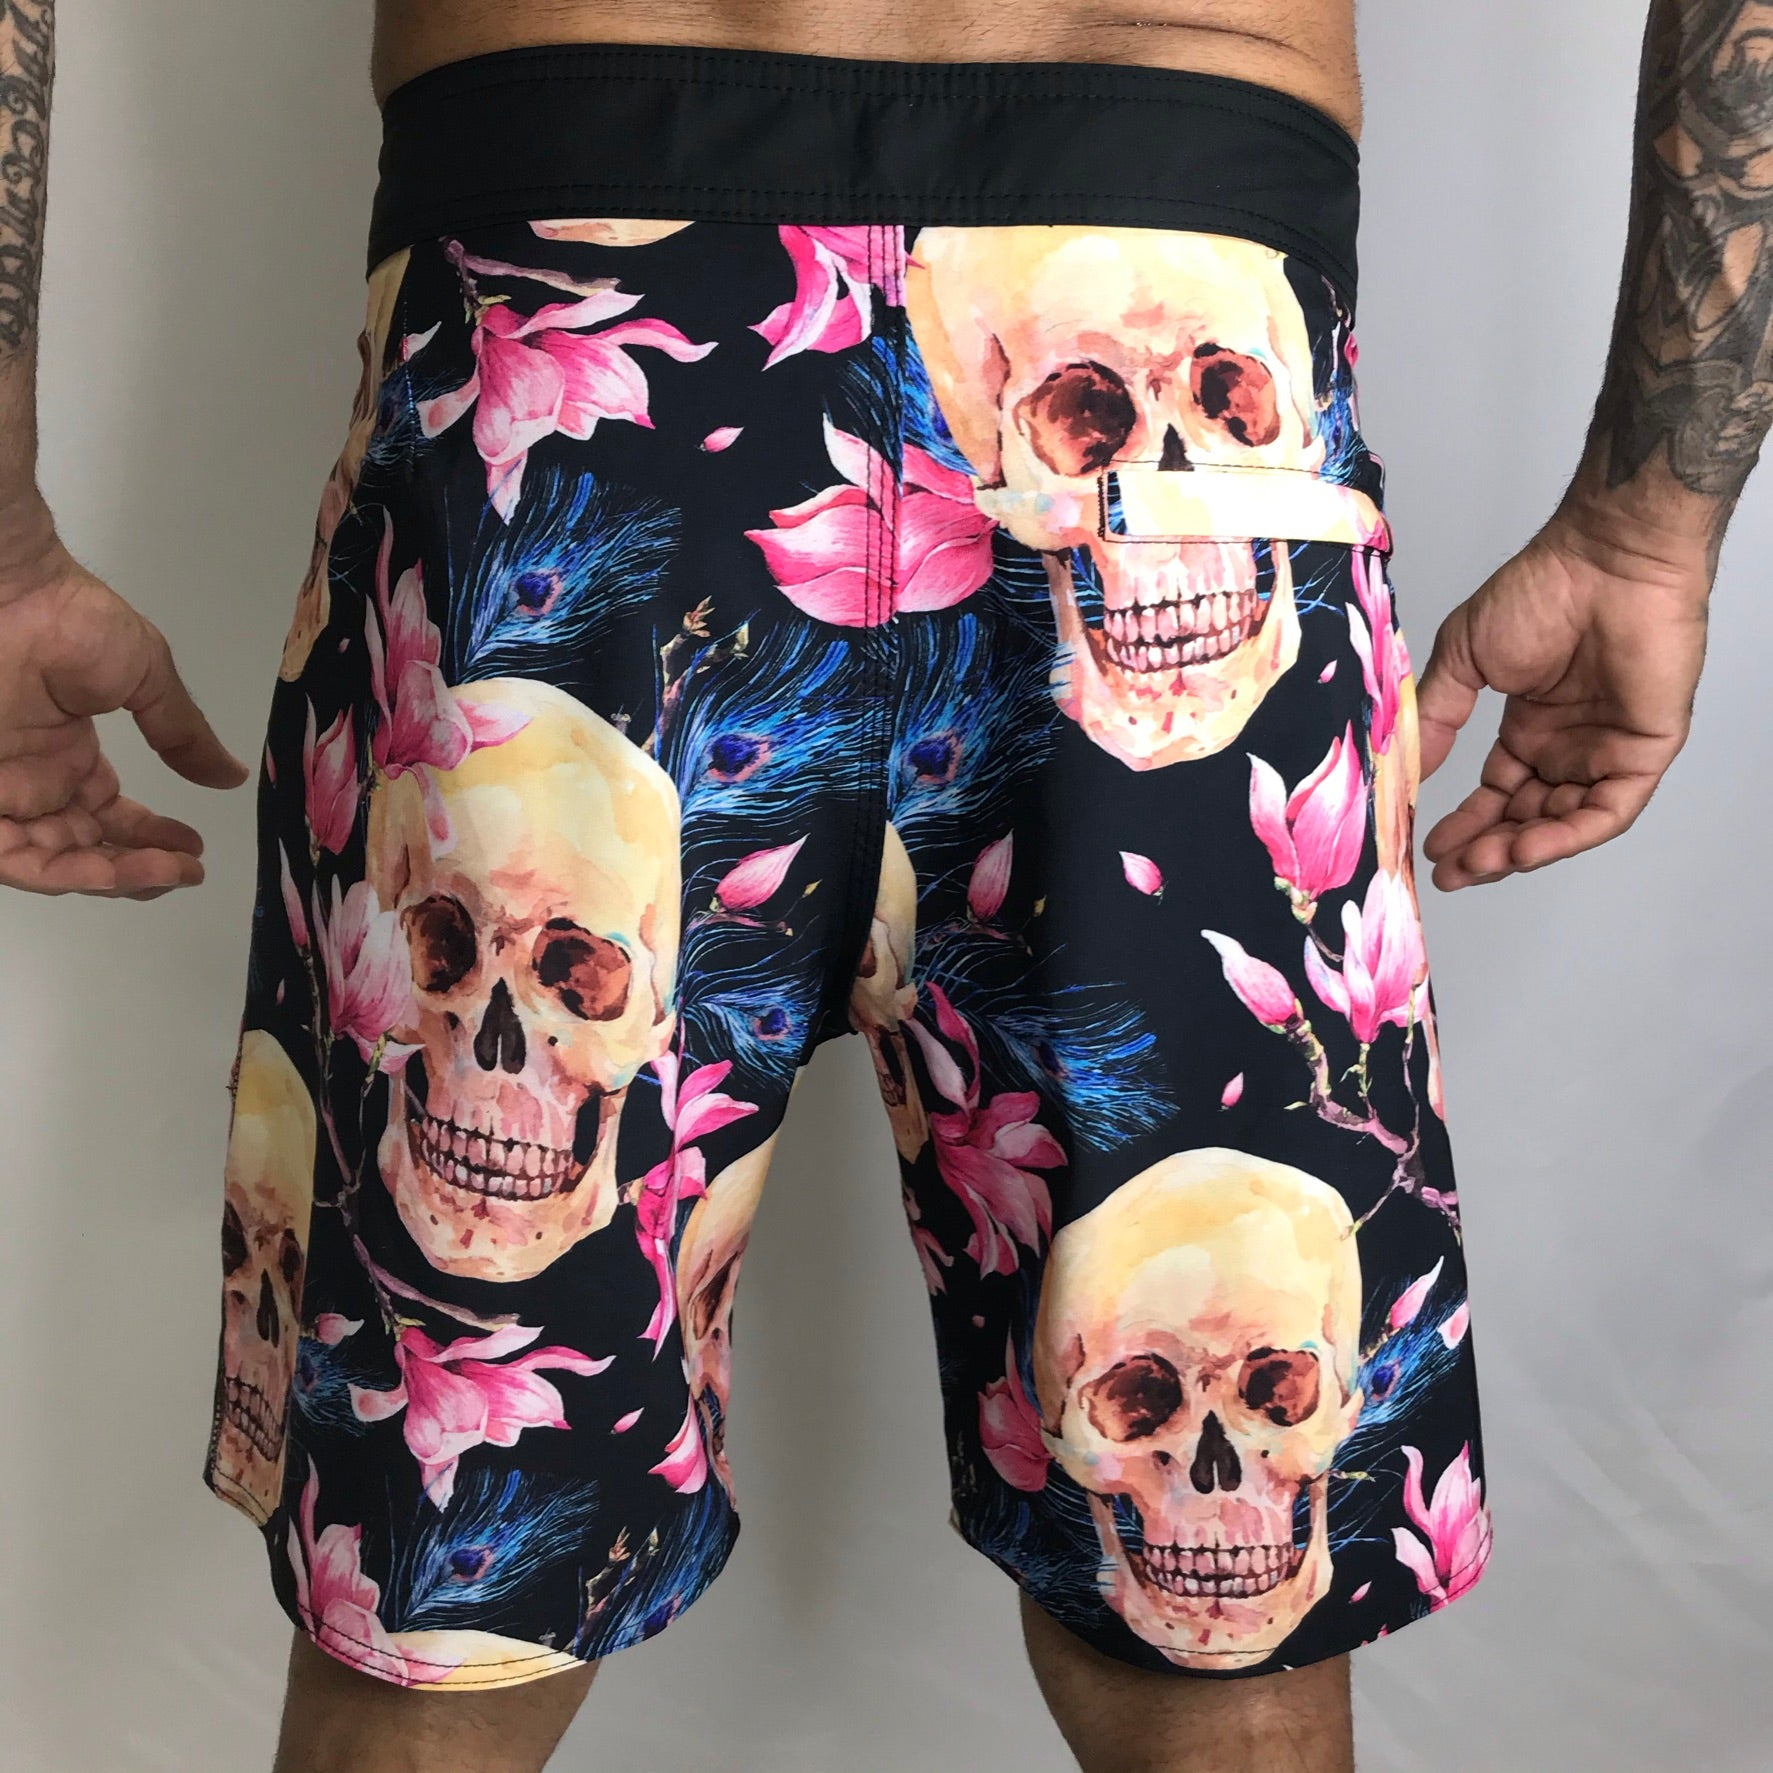 BERMUDA MASCULINA ONSET FITNESS - SKULL AND FLOWERS